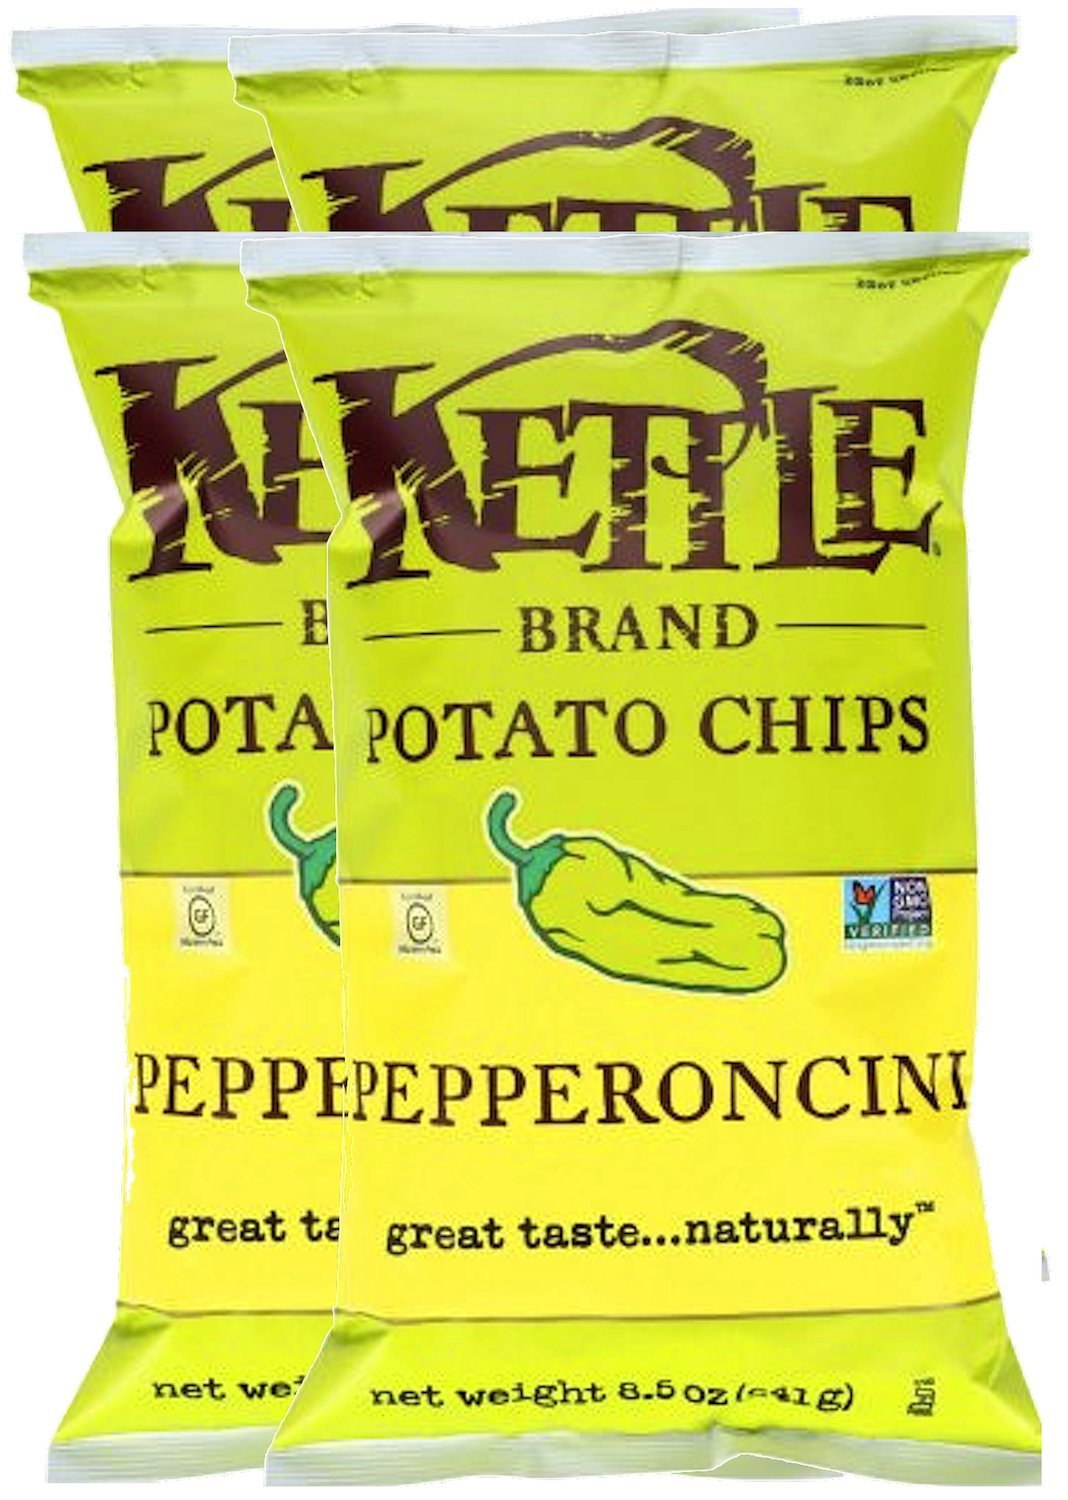 Kettle Brand Kettle Gluten Free Chips Pepperoncini 8.5oz Snack Care Package for College, Military, Sports (4)